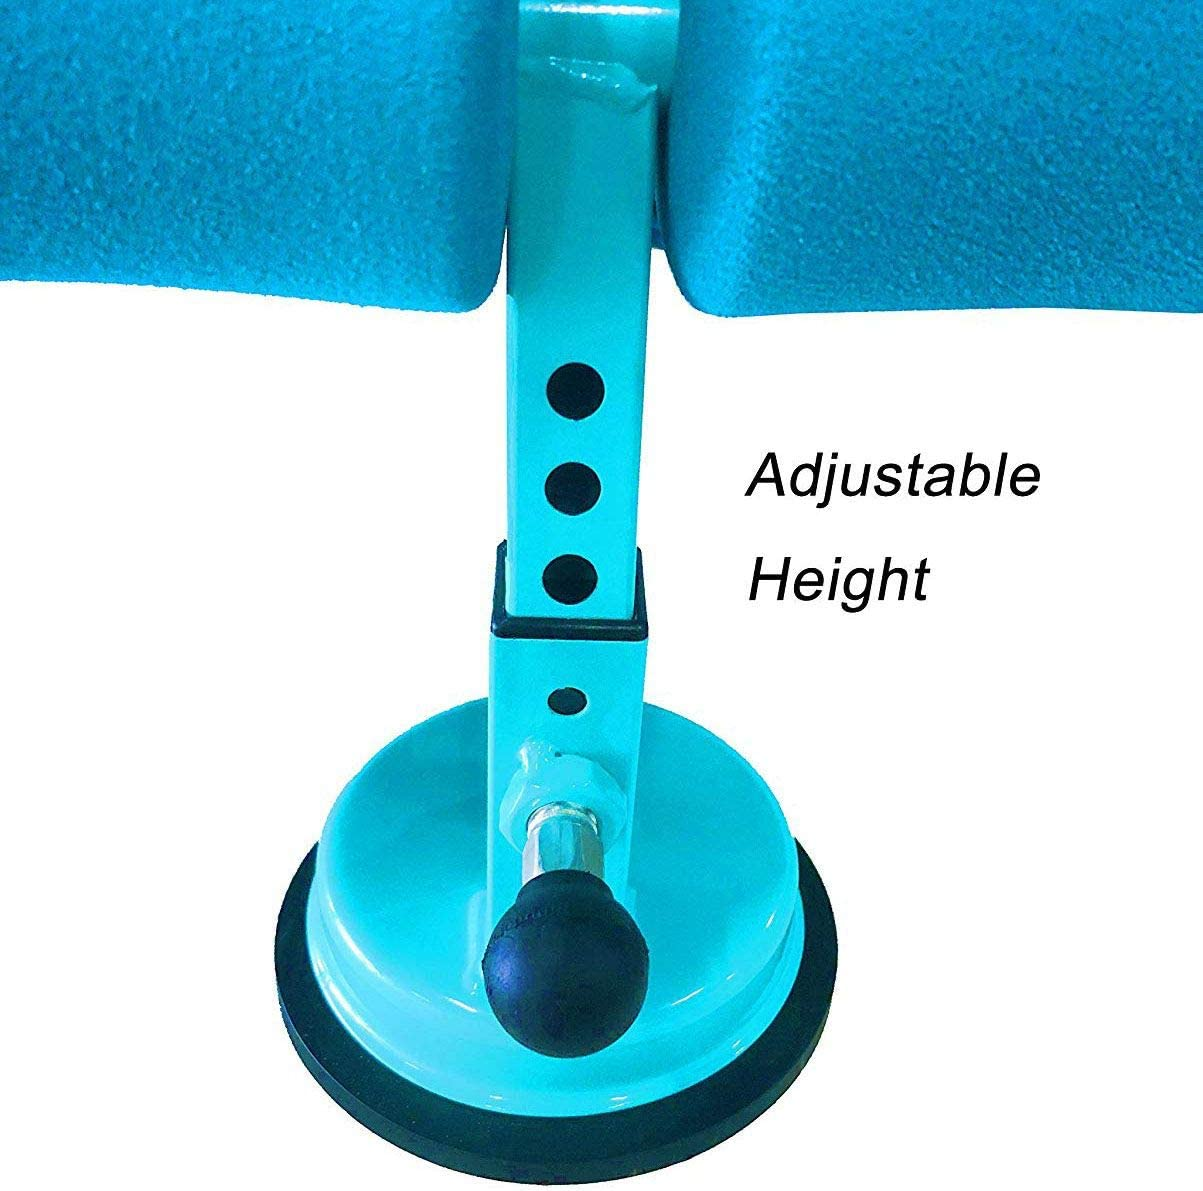 JVSISM Portable Self-Suction Situp Bar Adjustable Sit Up Equipment Helper fitness equipment,Great For Push Ups,Sit Ups Muscle Training And Body Stretching